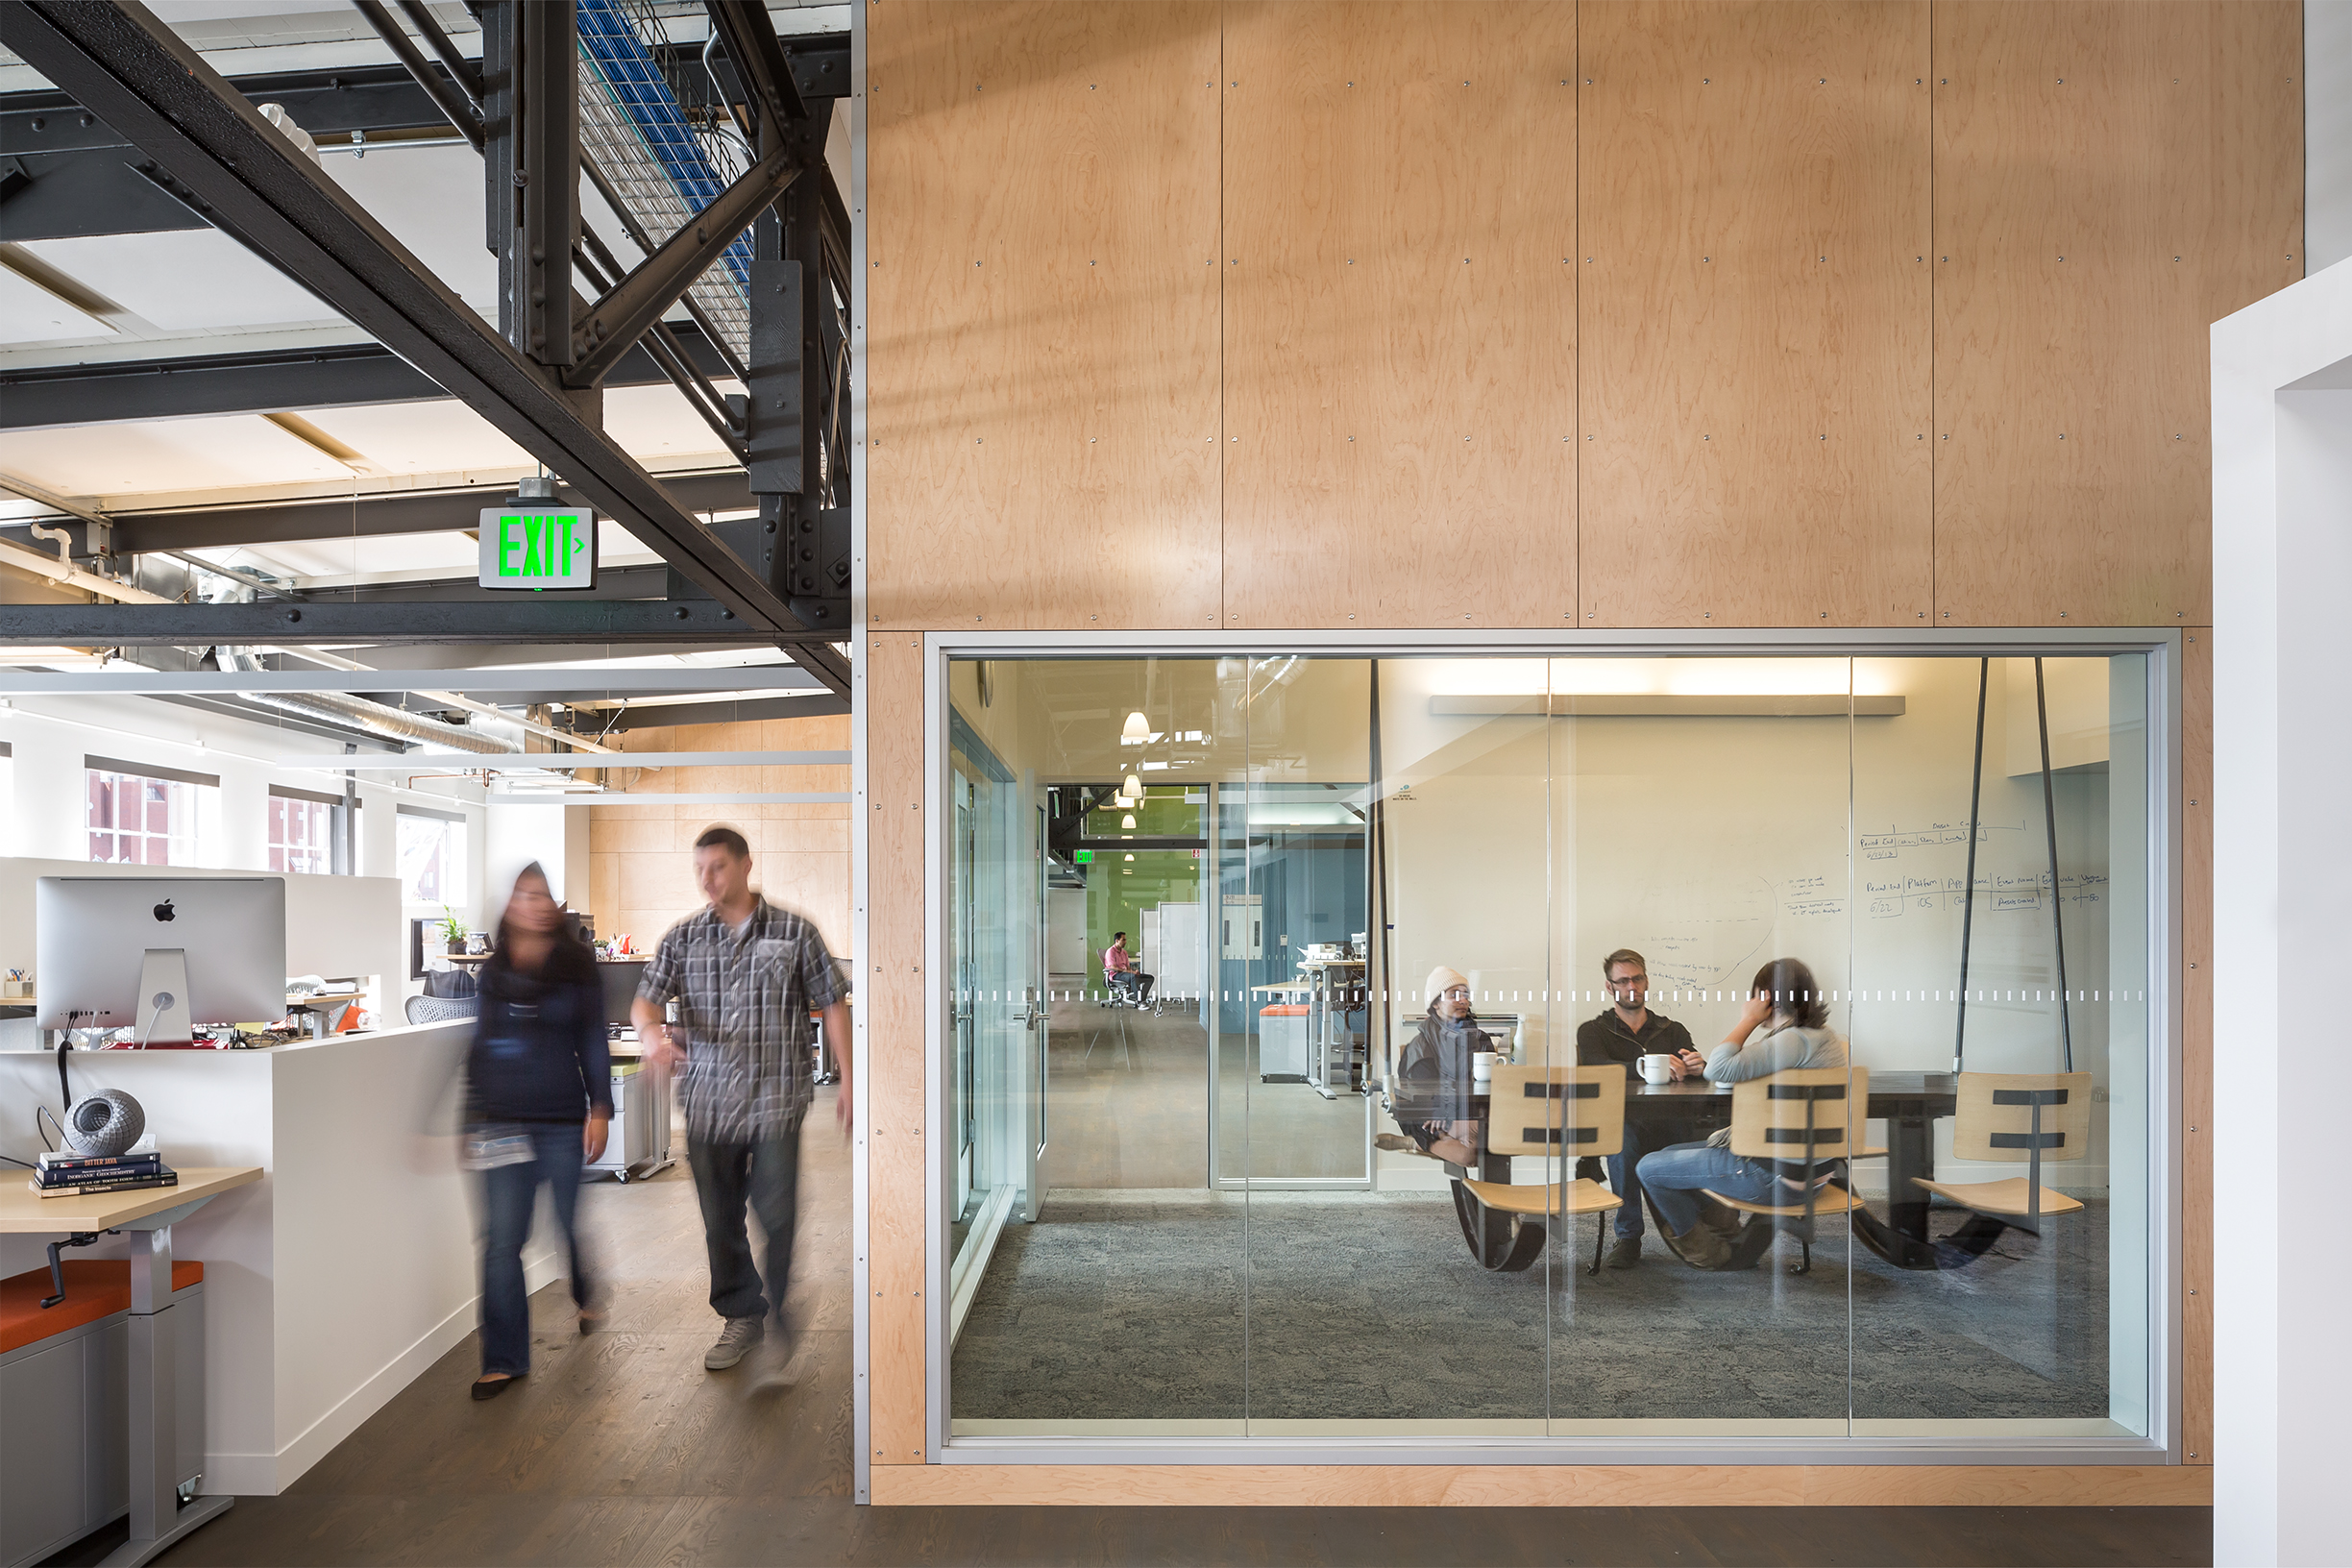 Autodesk Pier 9 San Francisco Office Interior with Conference Room